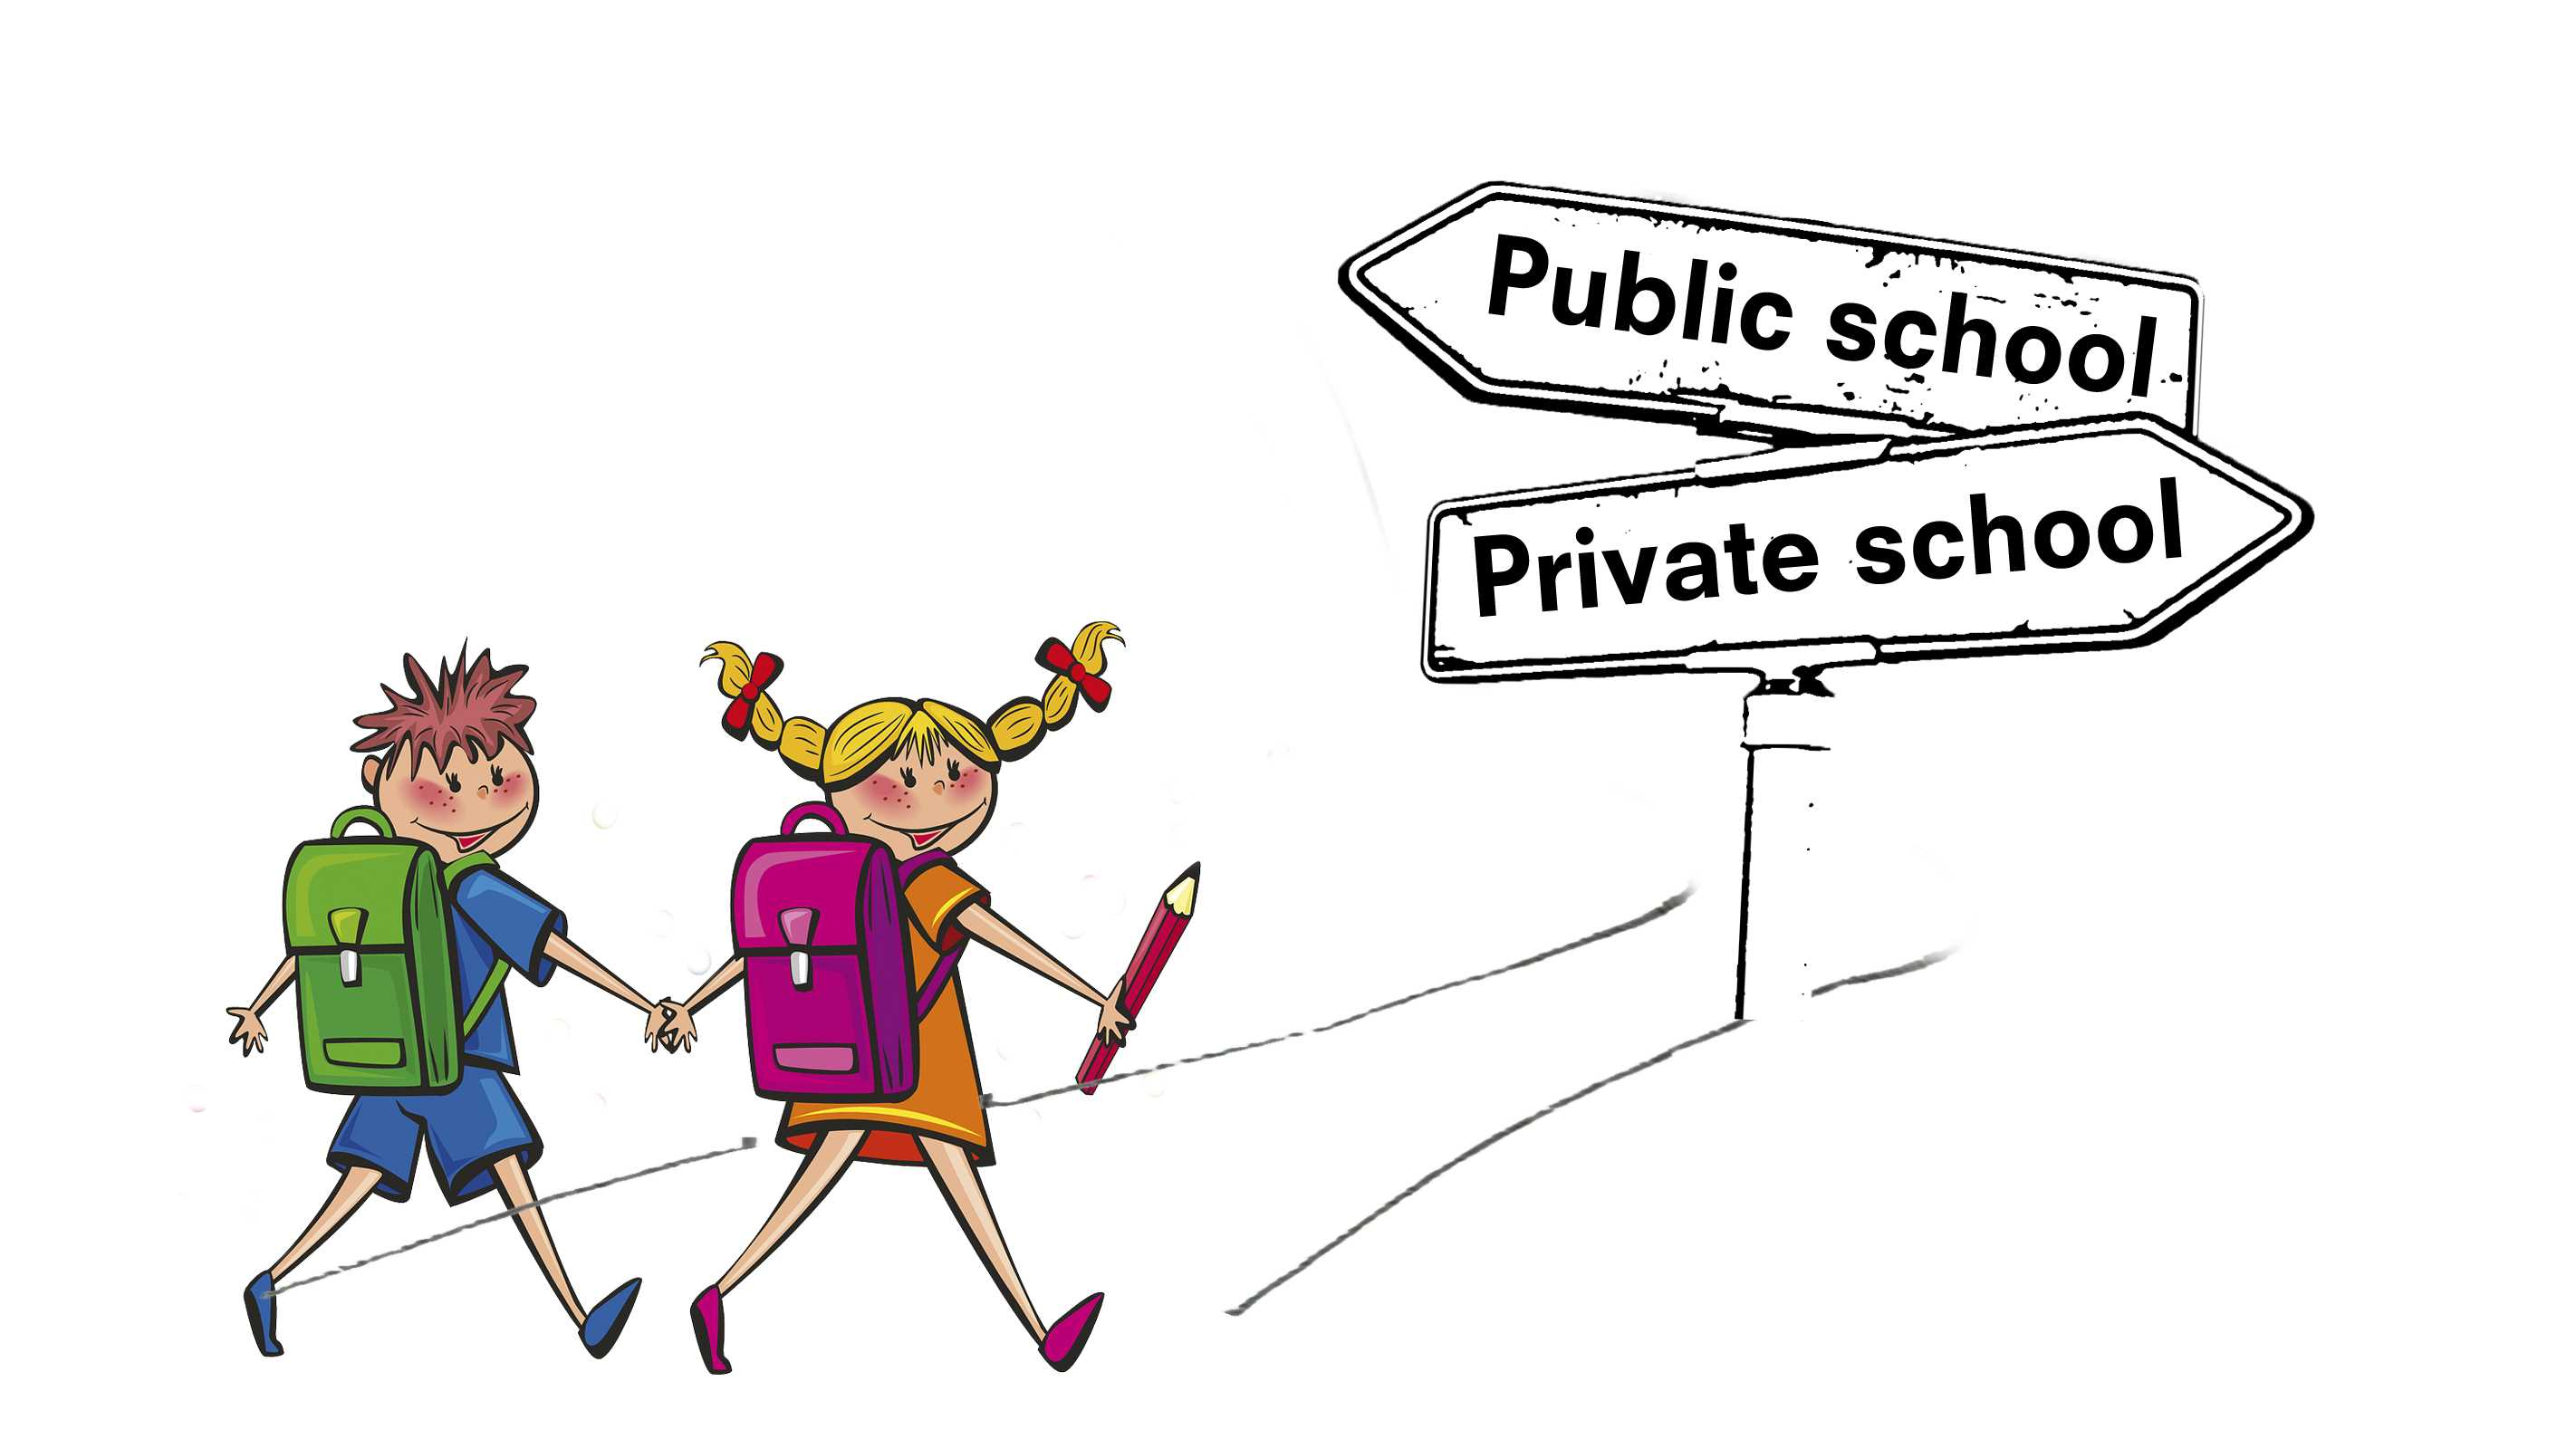 Private schools vs public schools essay